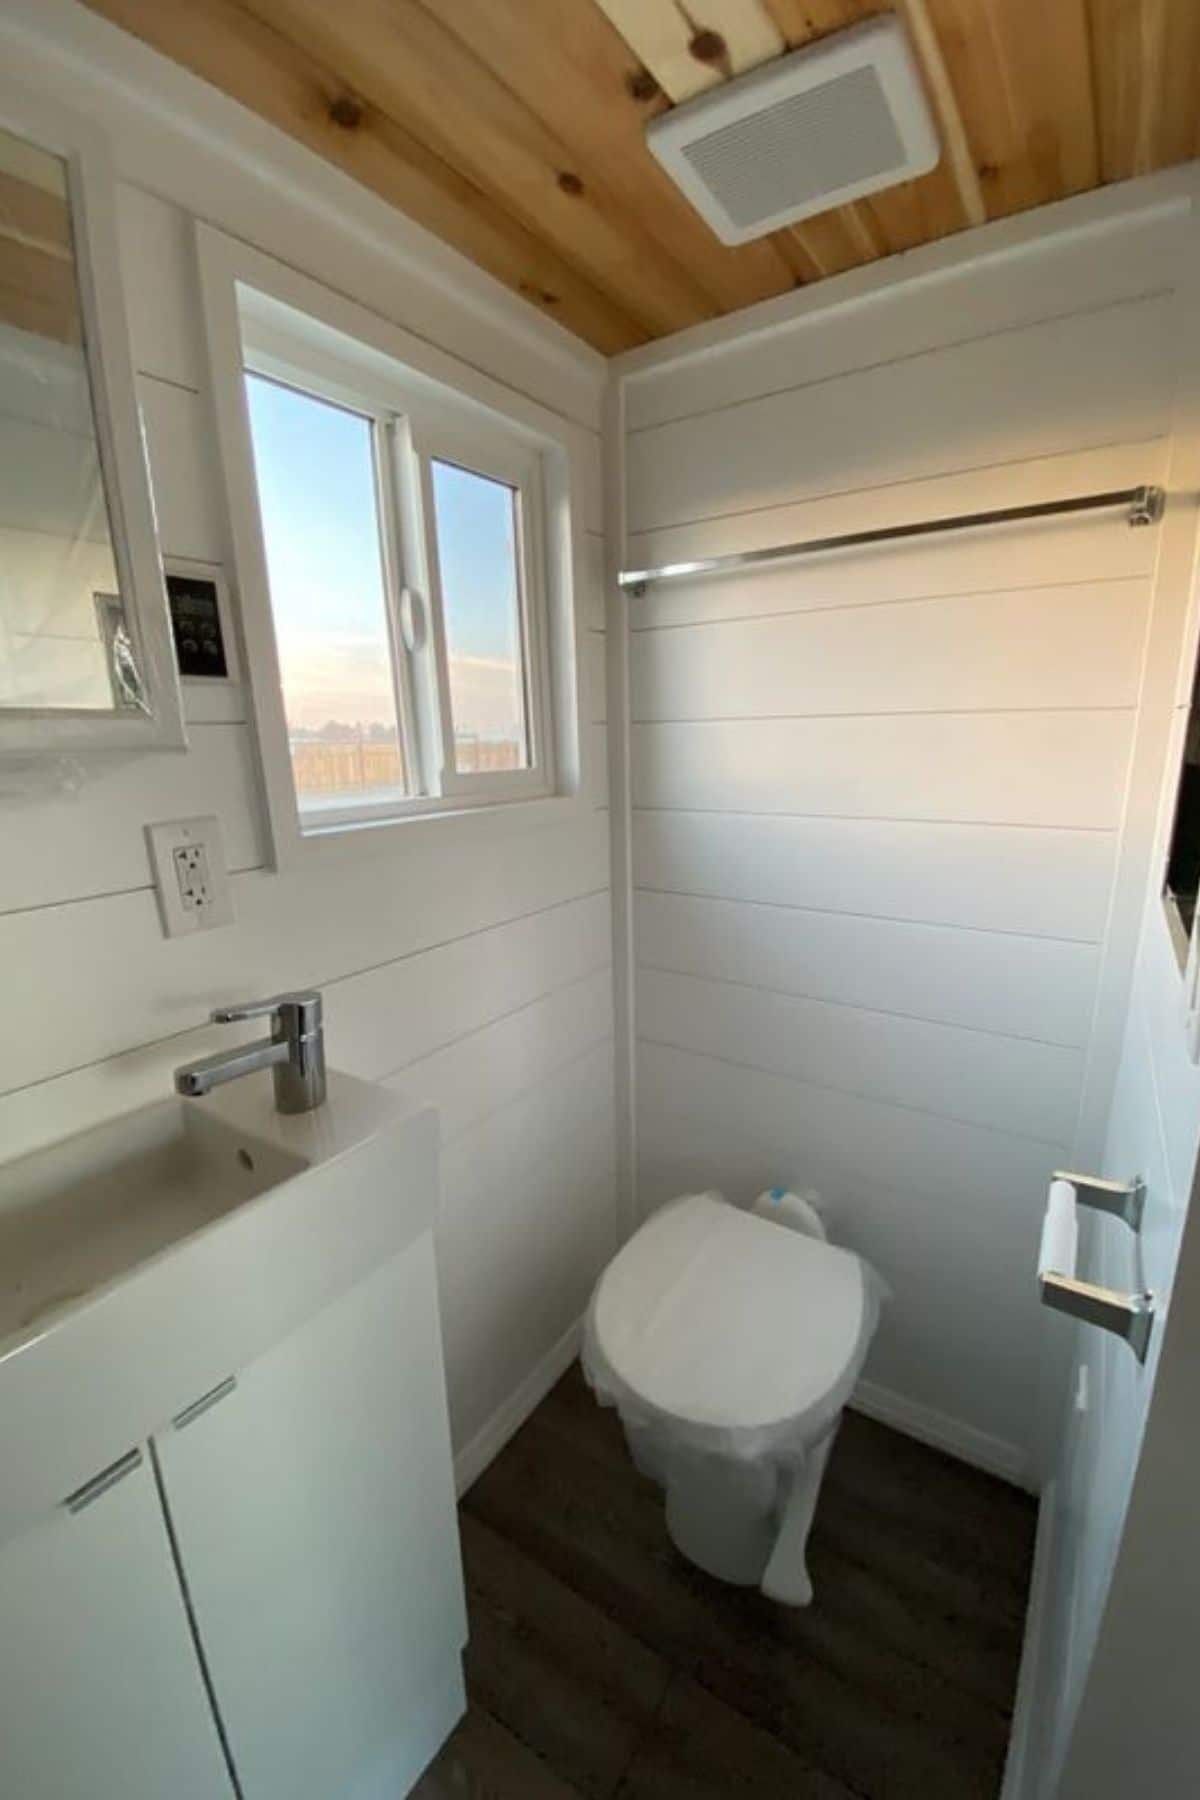 compost toilet against white wall beneath towel rack